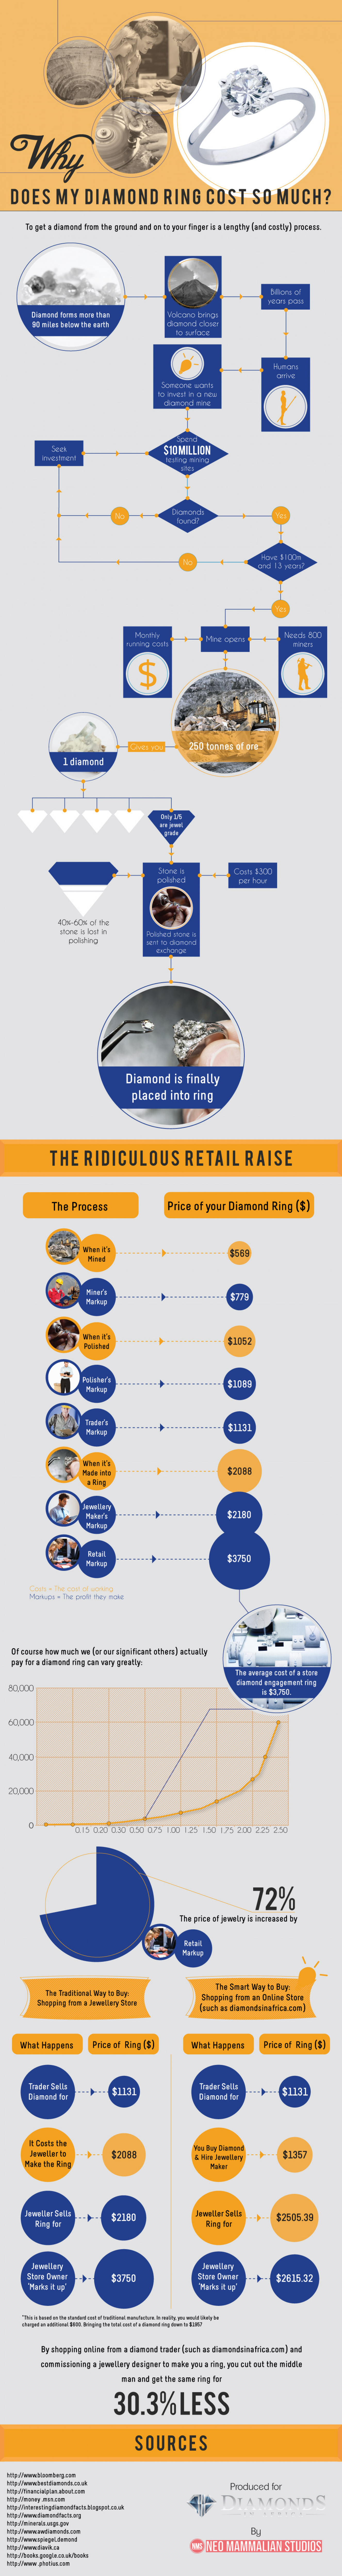 Why does my diamond ring cost so much? Infographic